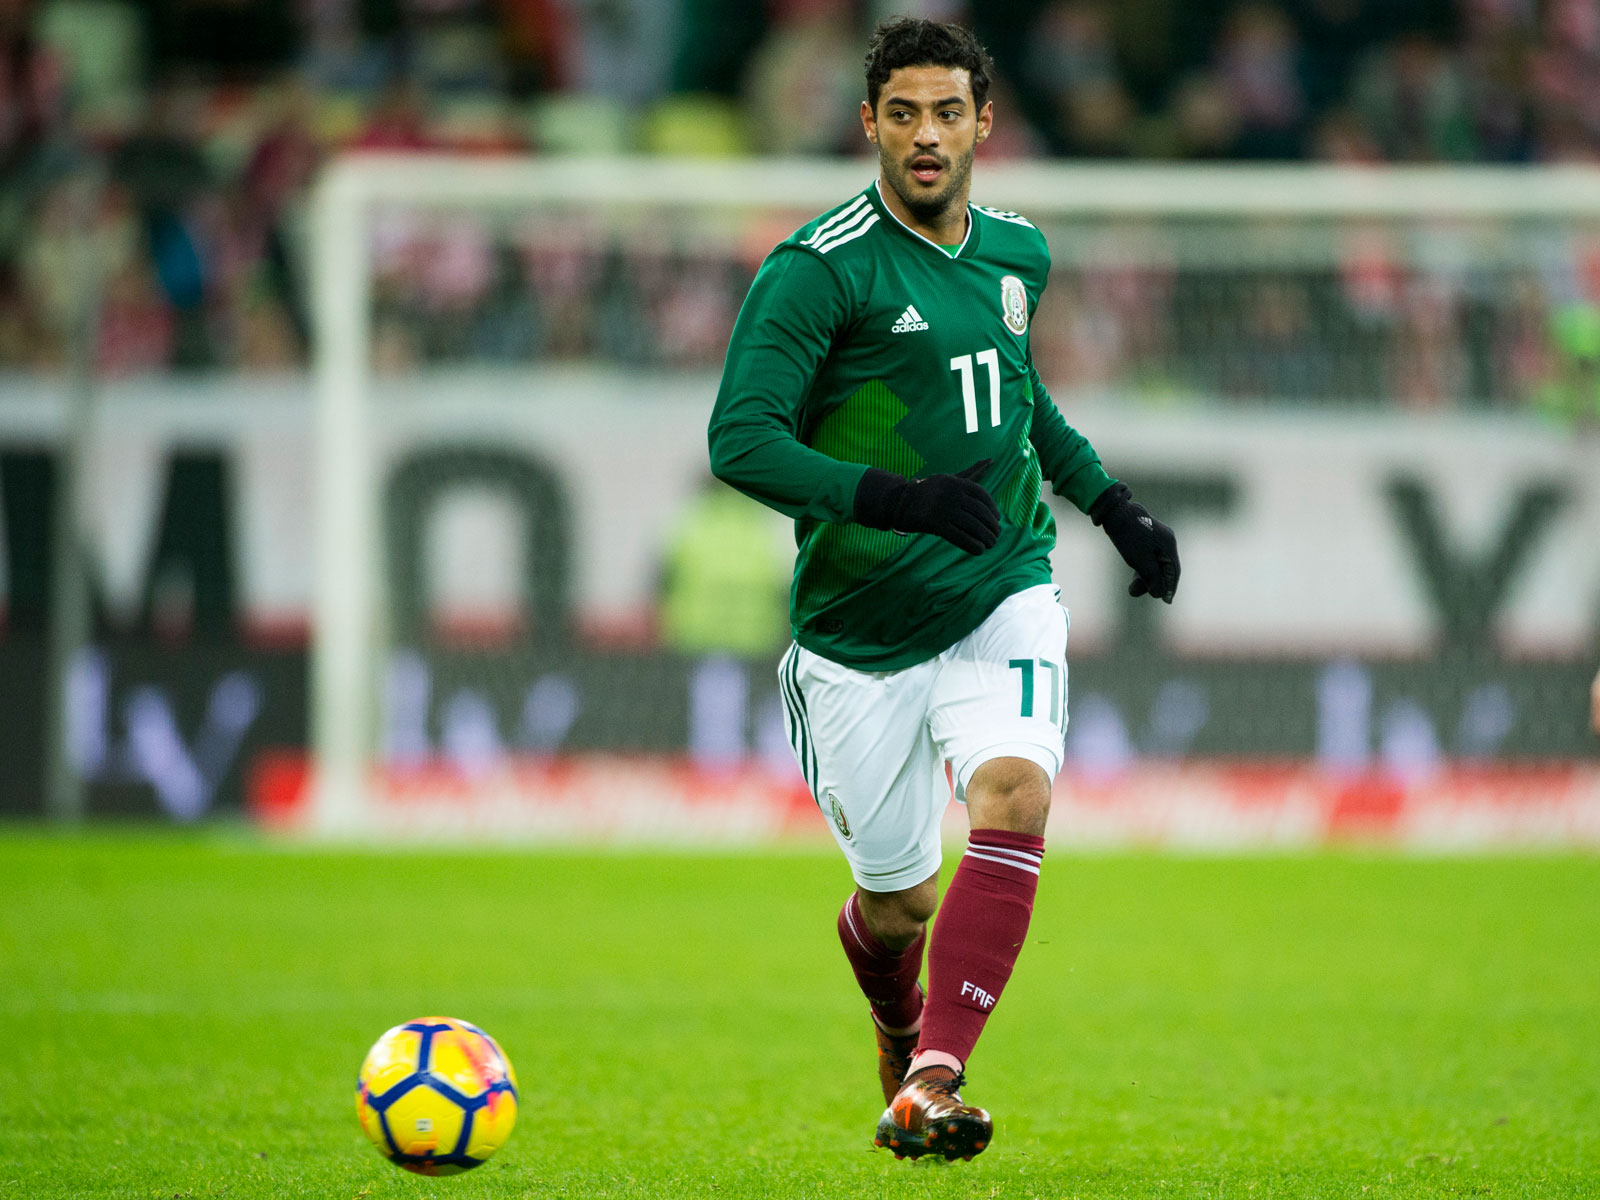 Mexican star Carlos Vela is LAFC's first marquee signing.